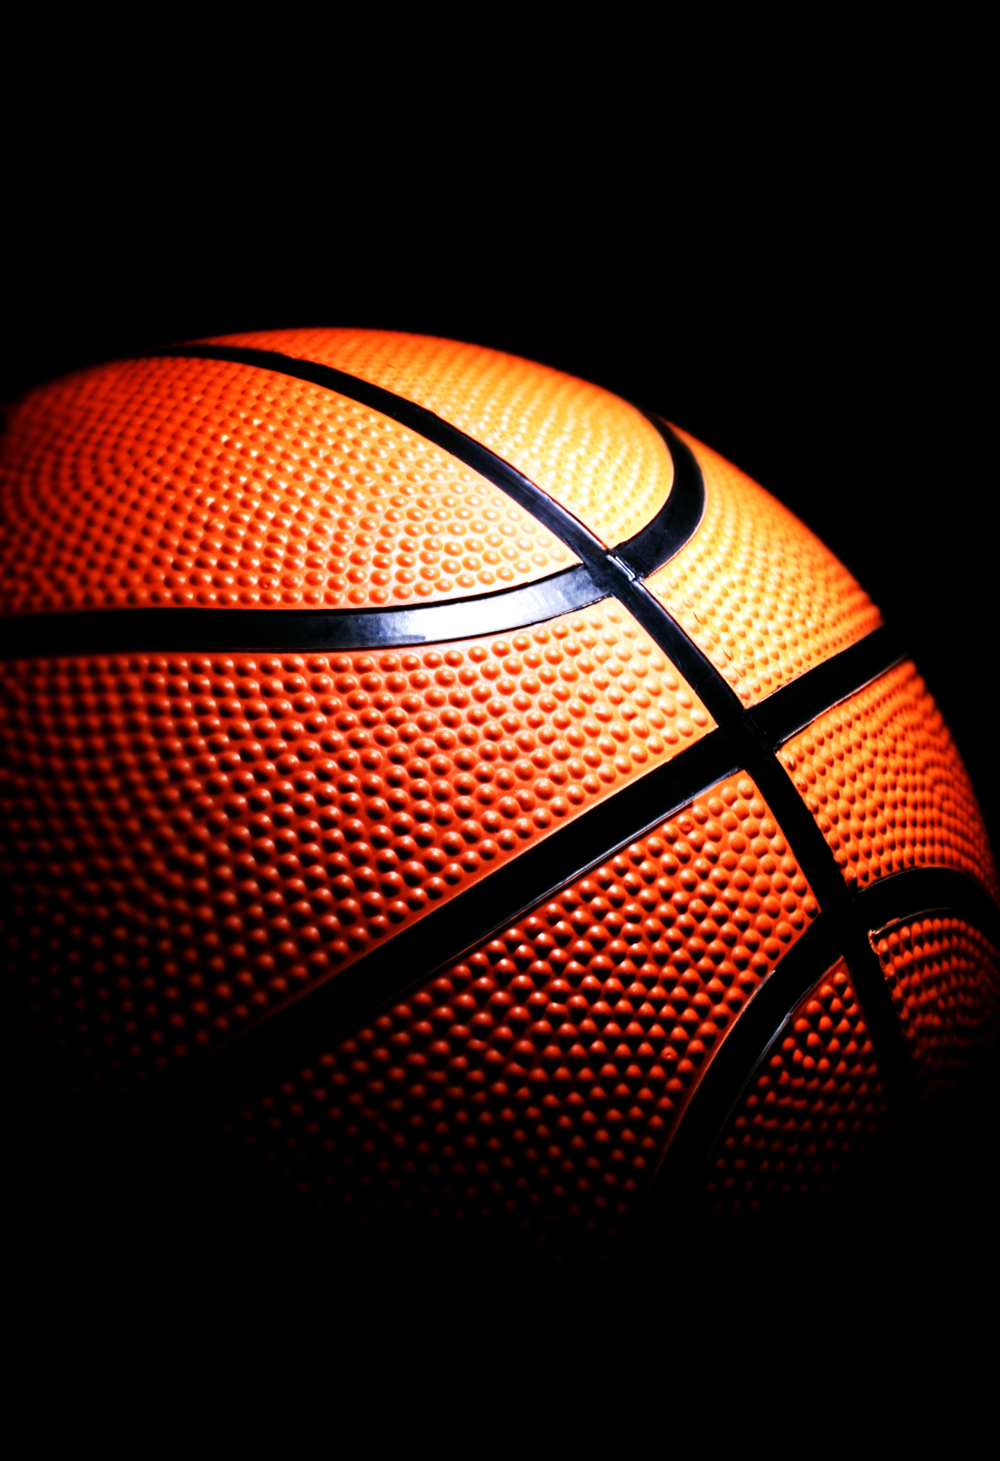 Image result for basketball free images